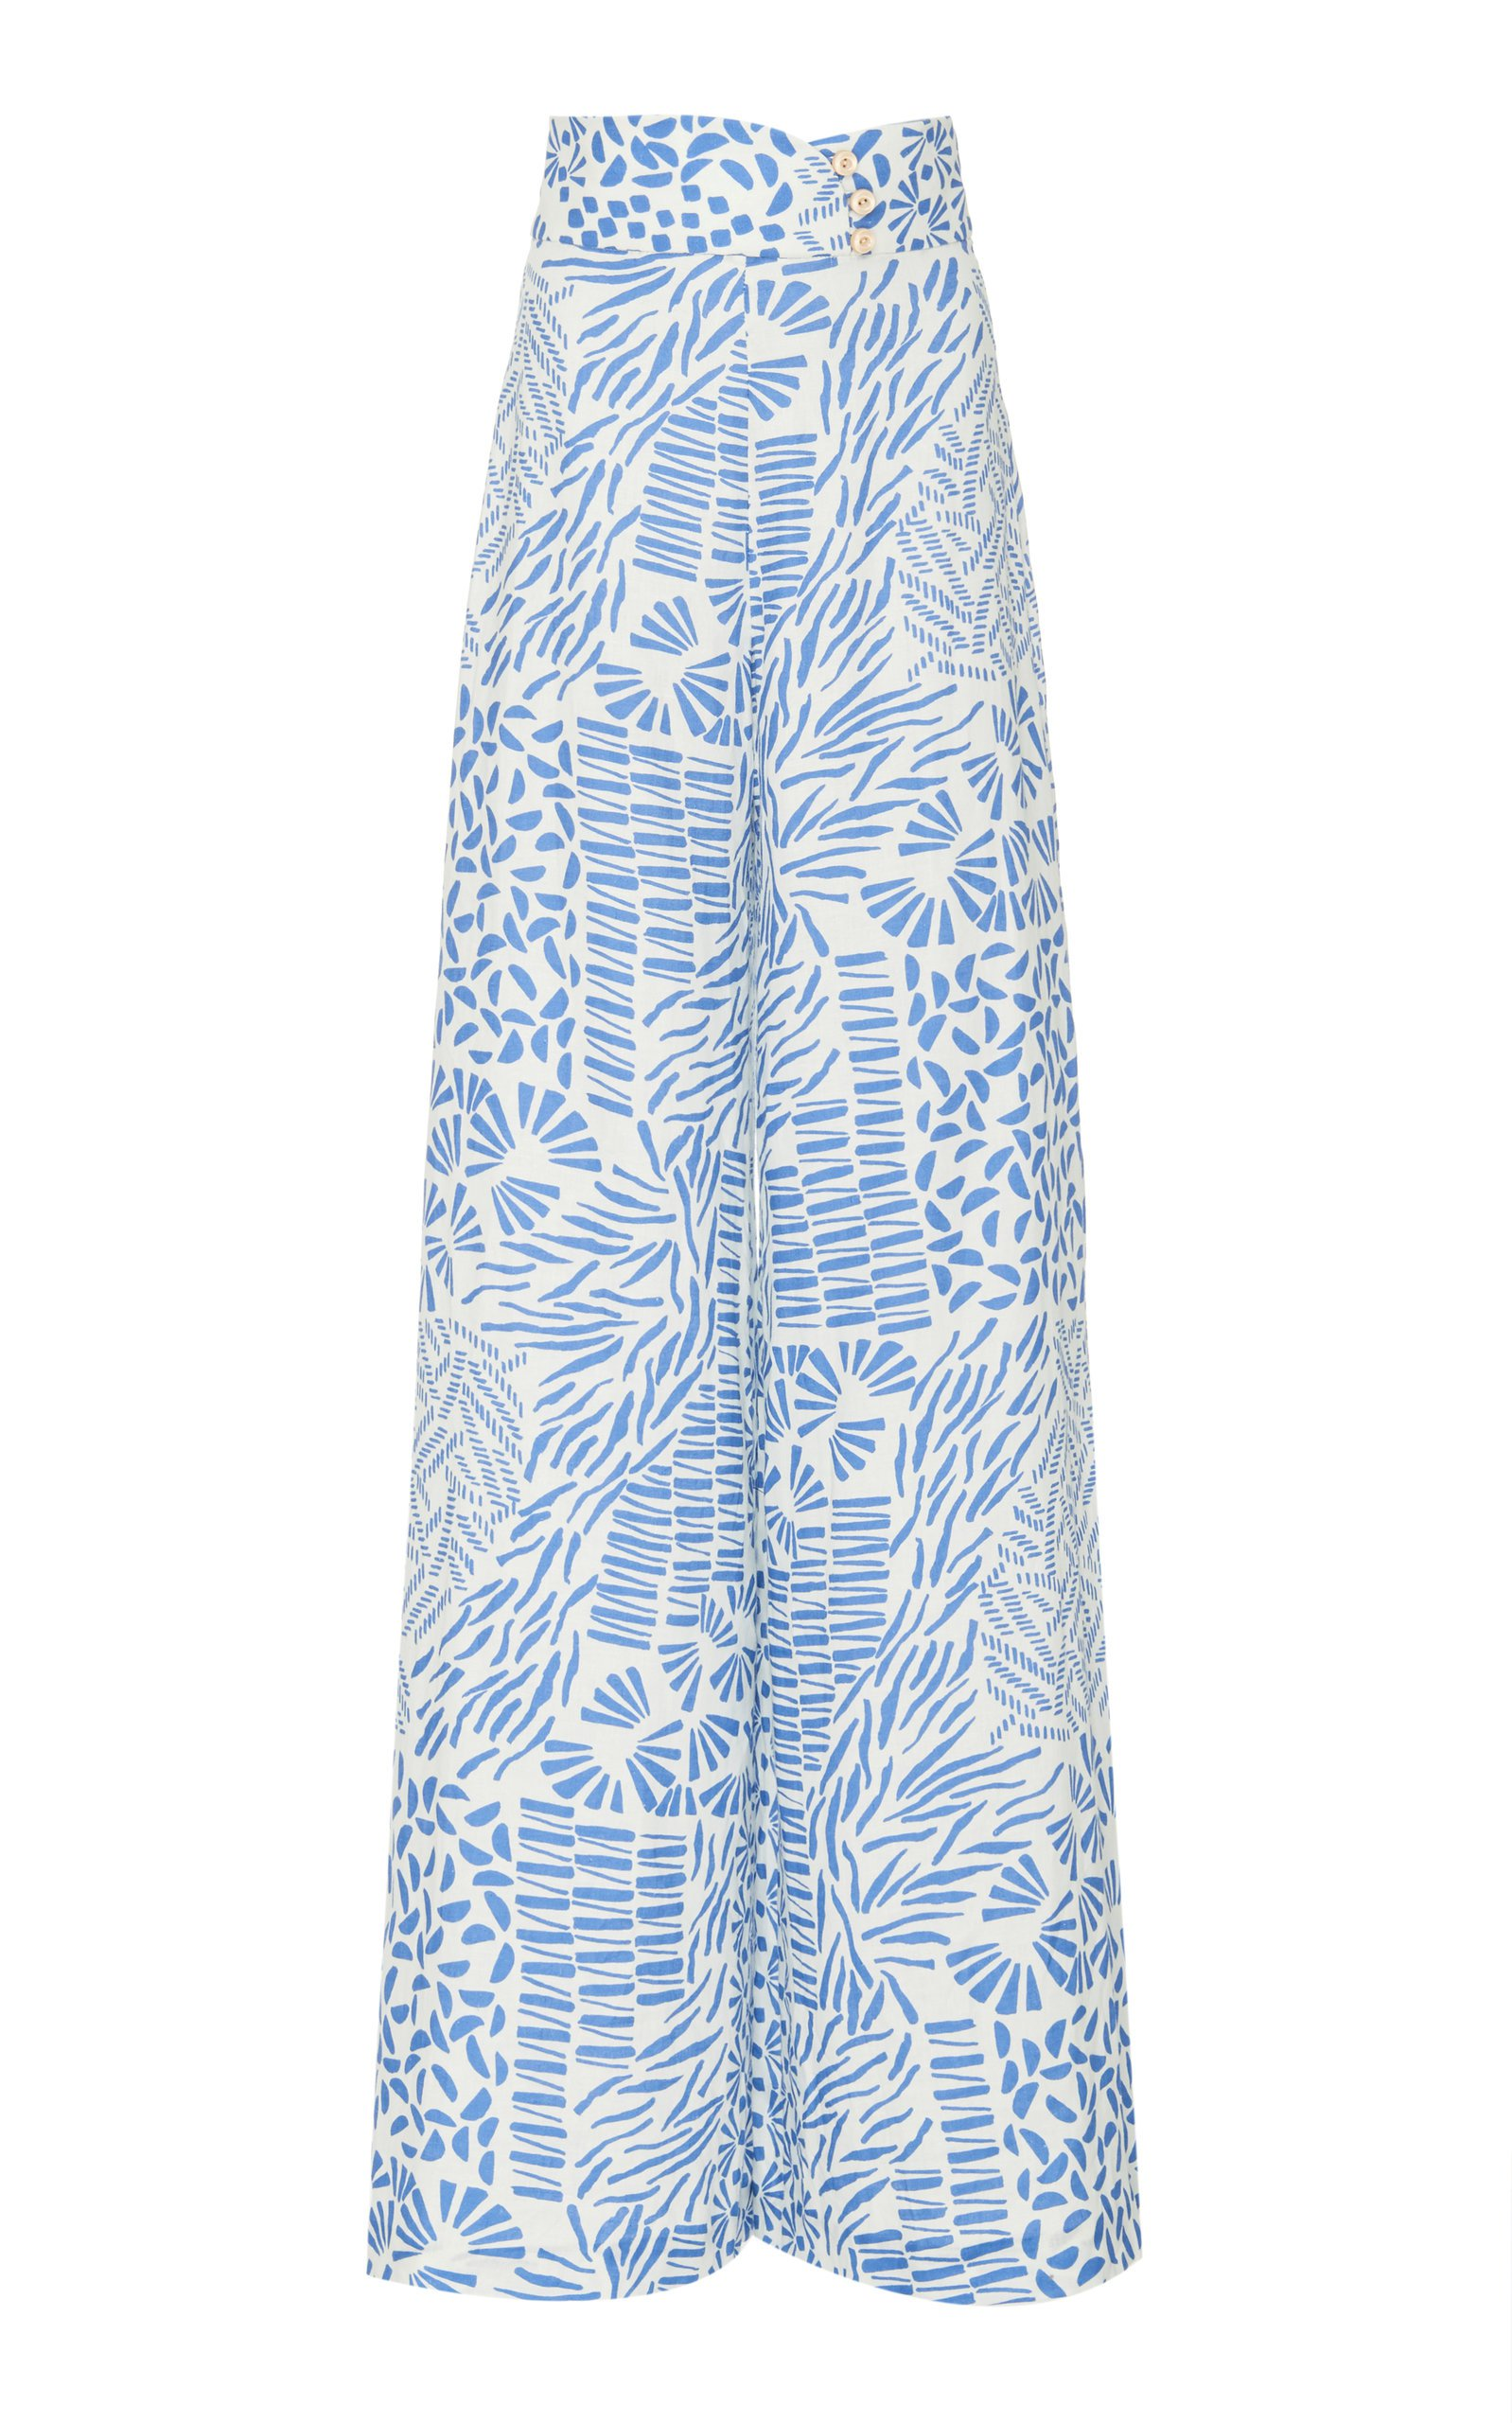 Alexis Neassa High Waisted Cotton Flare Pant Size: XS